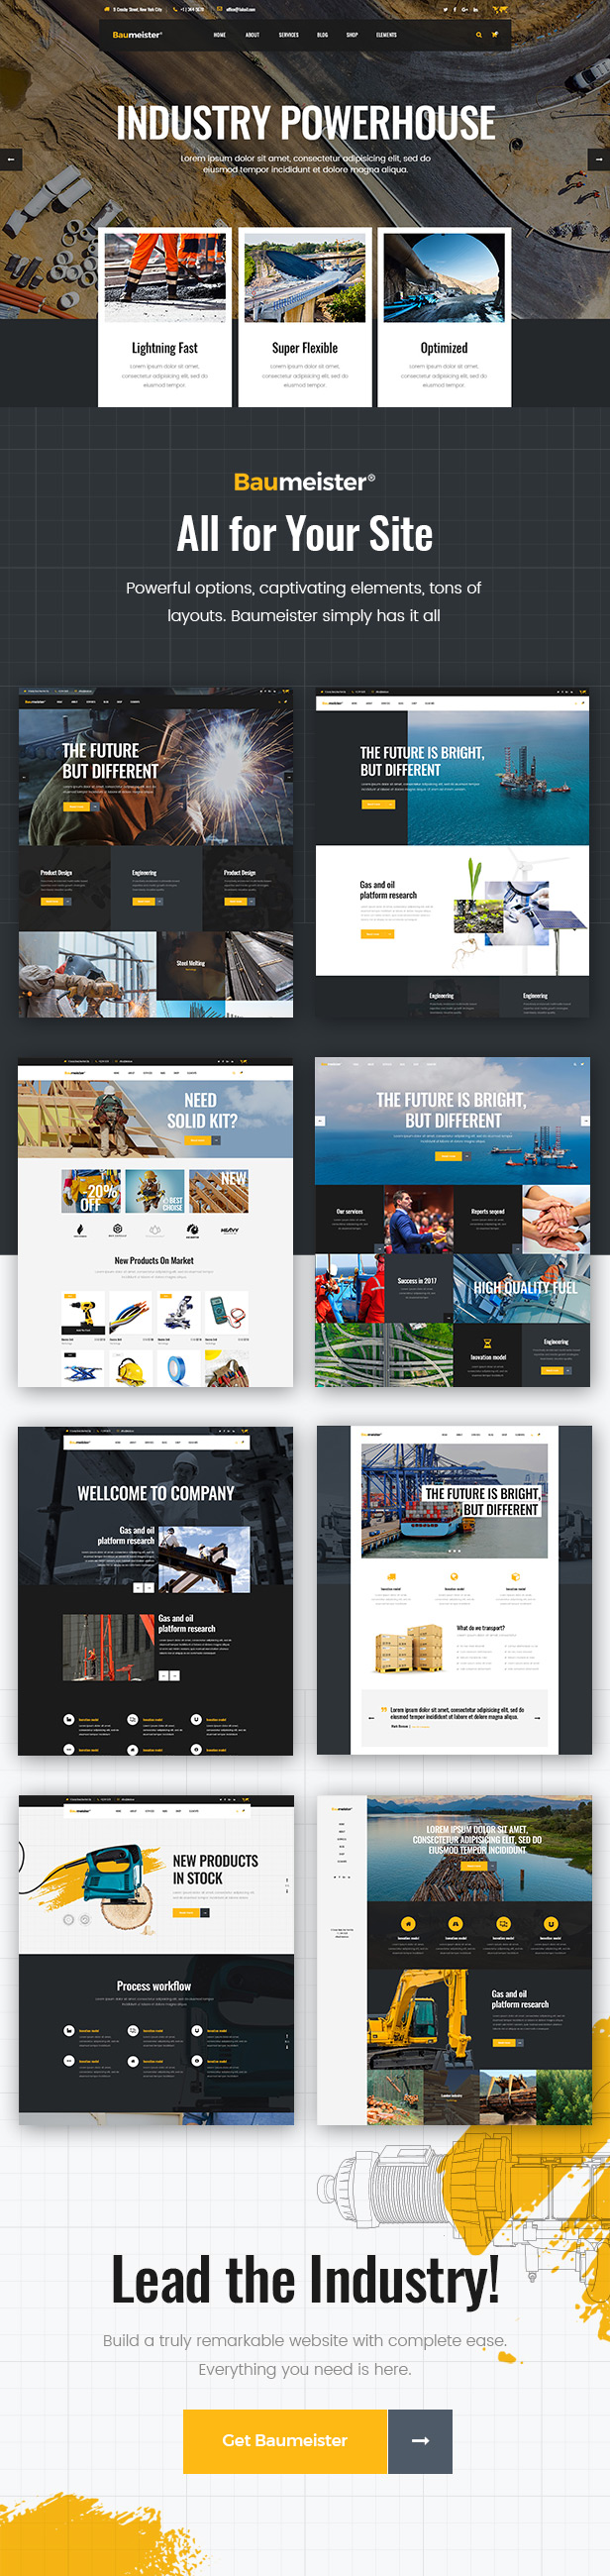 WordPress theme Baumeister - A Powerful Theme for Industry and Manufacturing (Corporate)